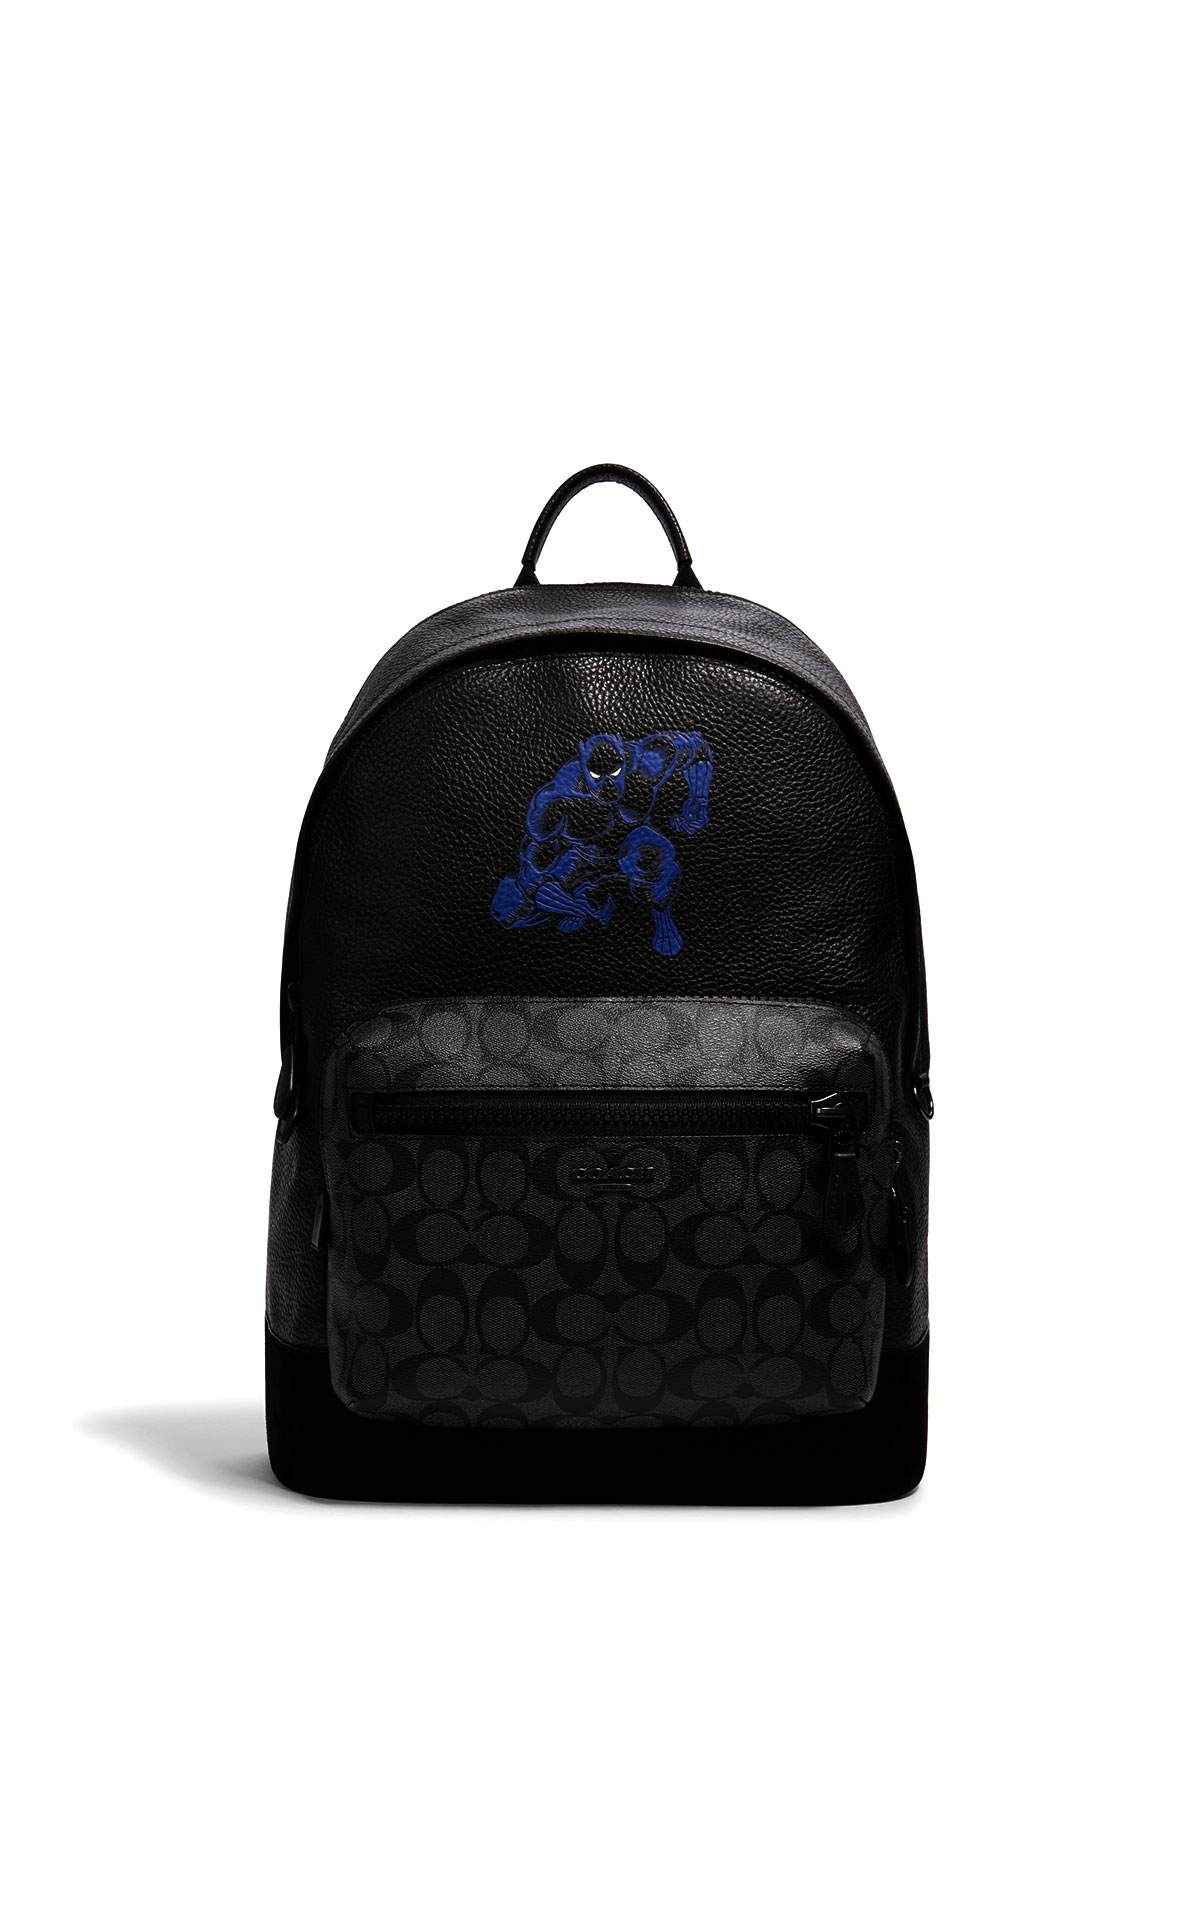 Coach West Backpack in Signature Black Panther Motif at The Bicester Village Shopping Collection